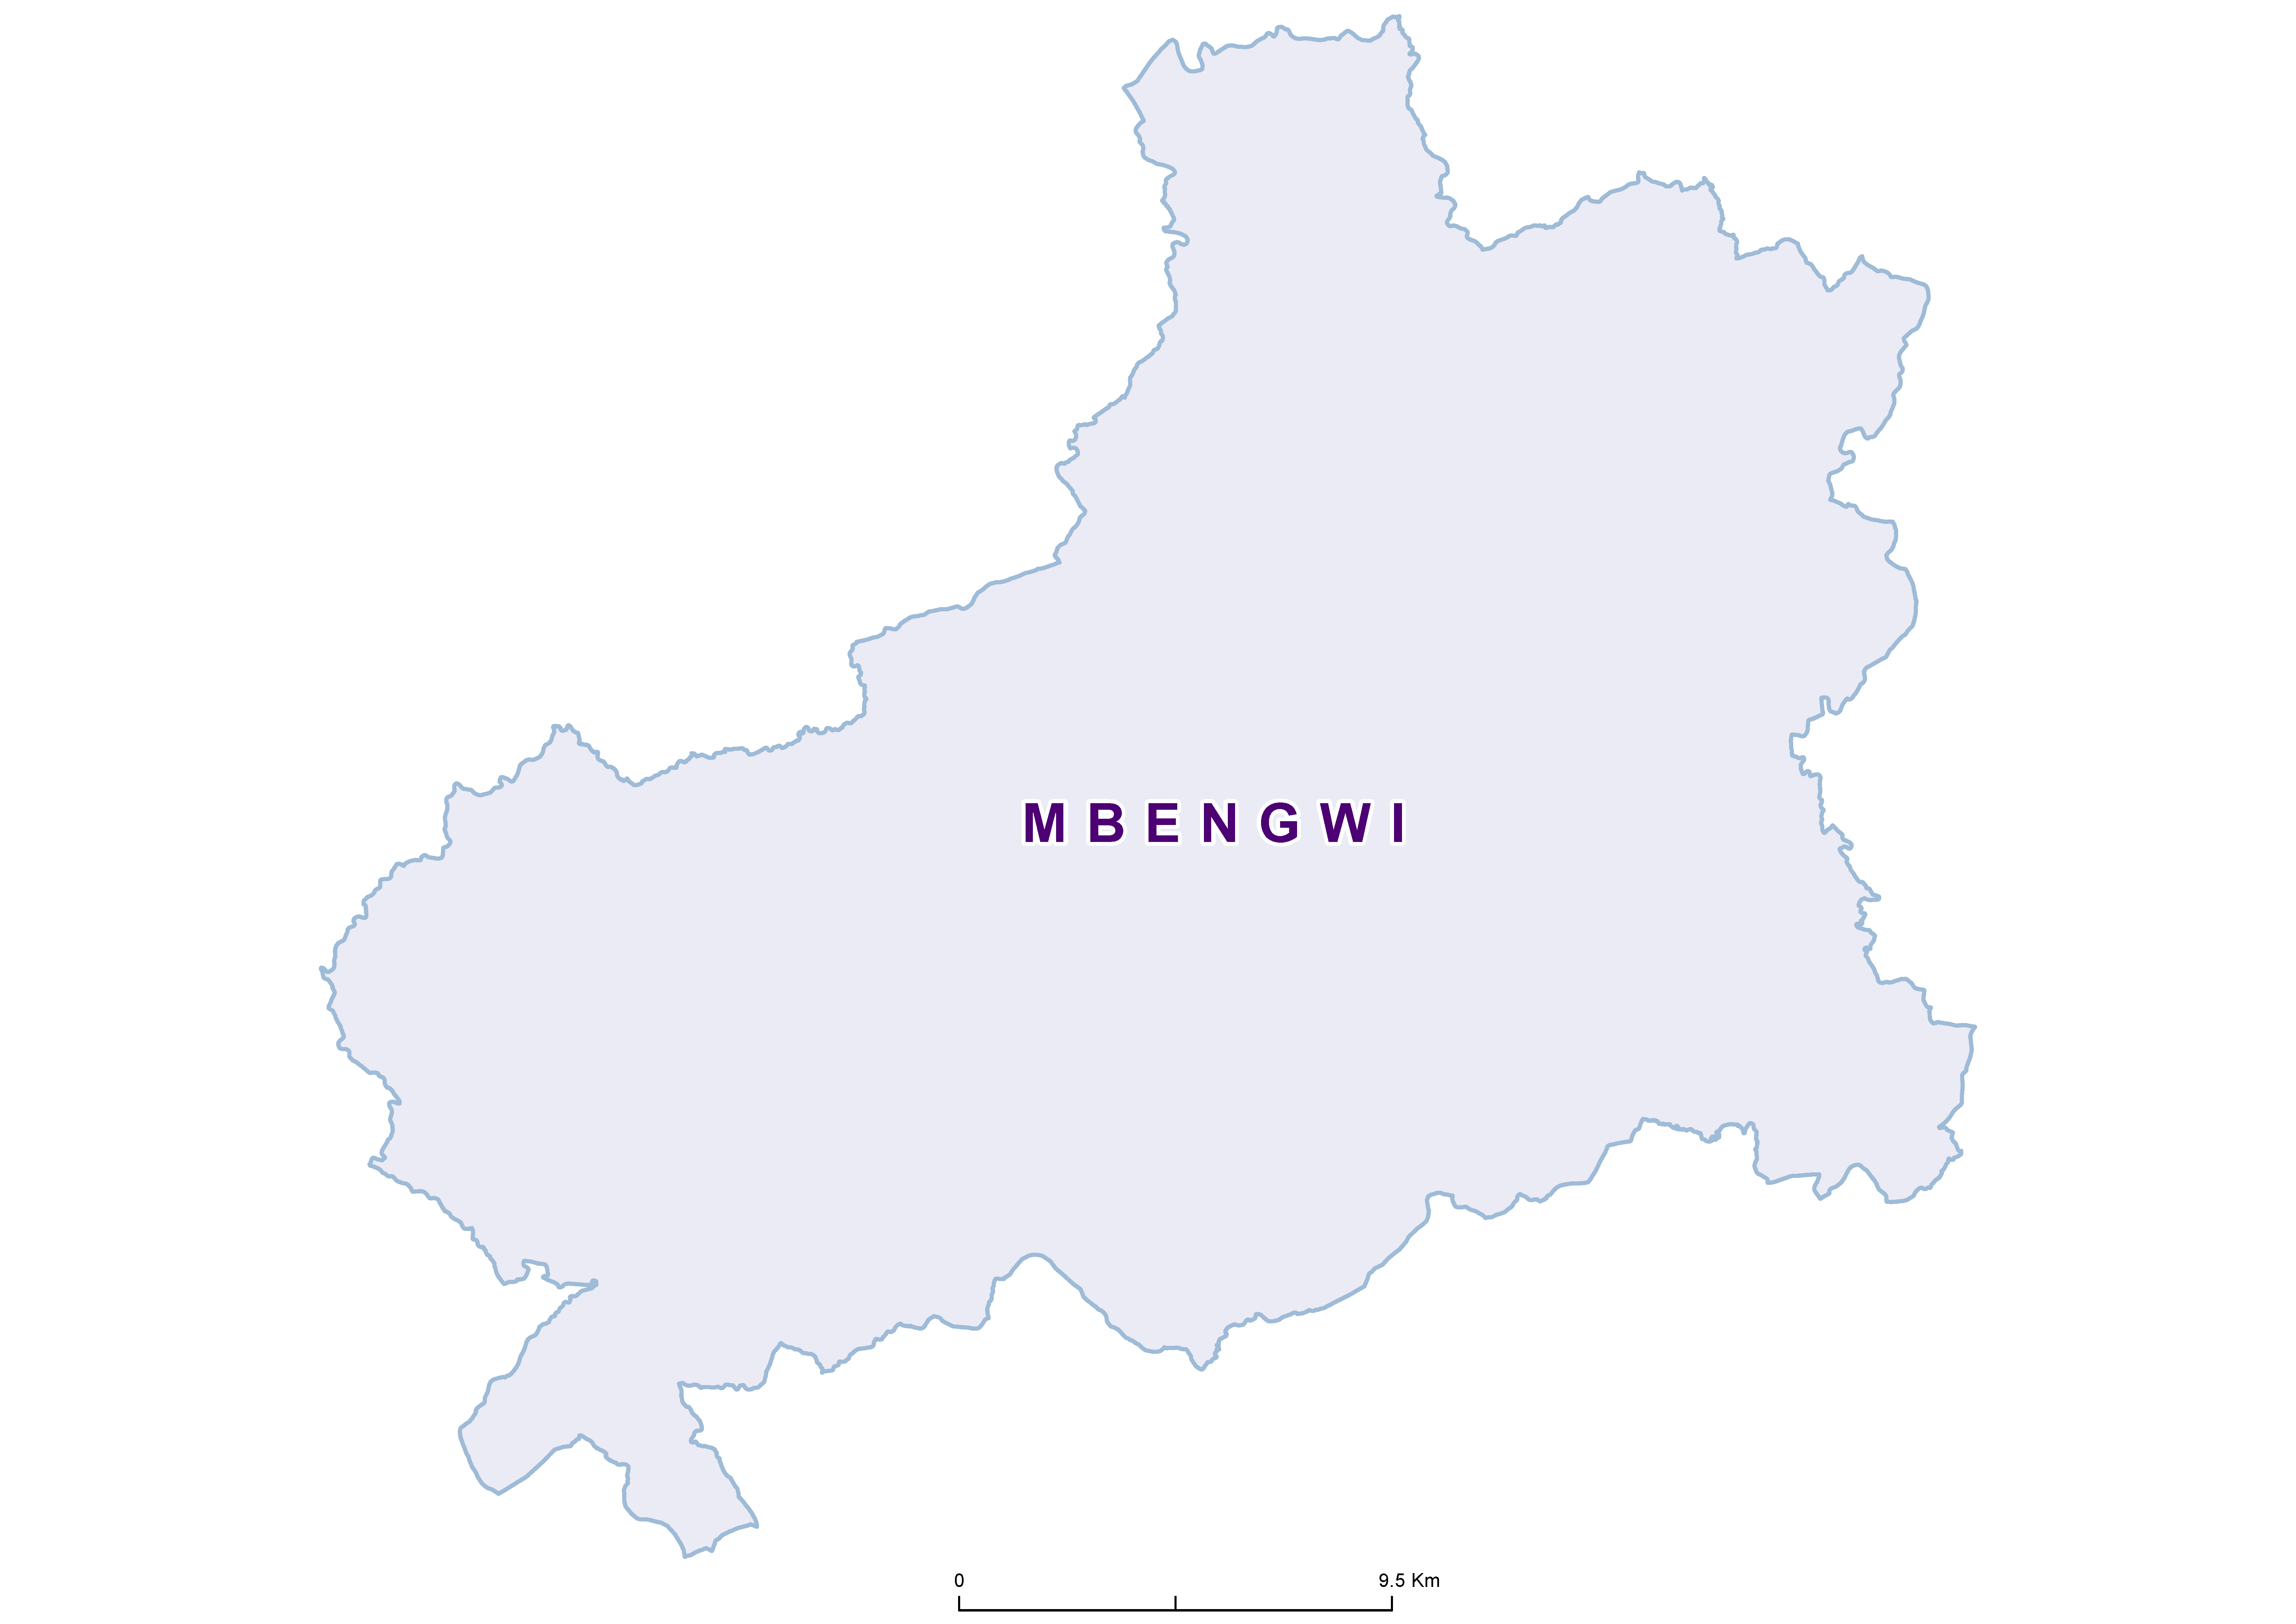 Mbengwi Mean STH 19850001